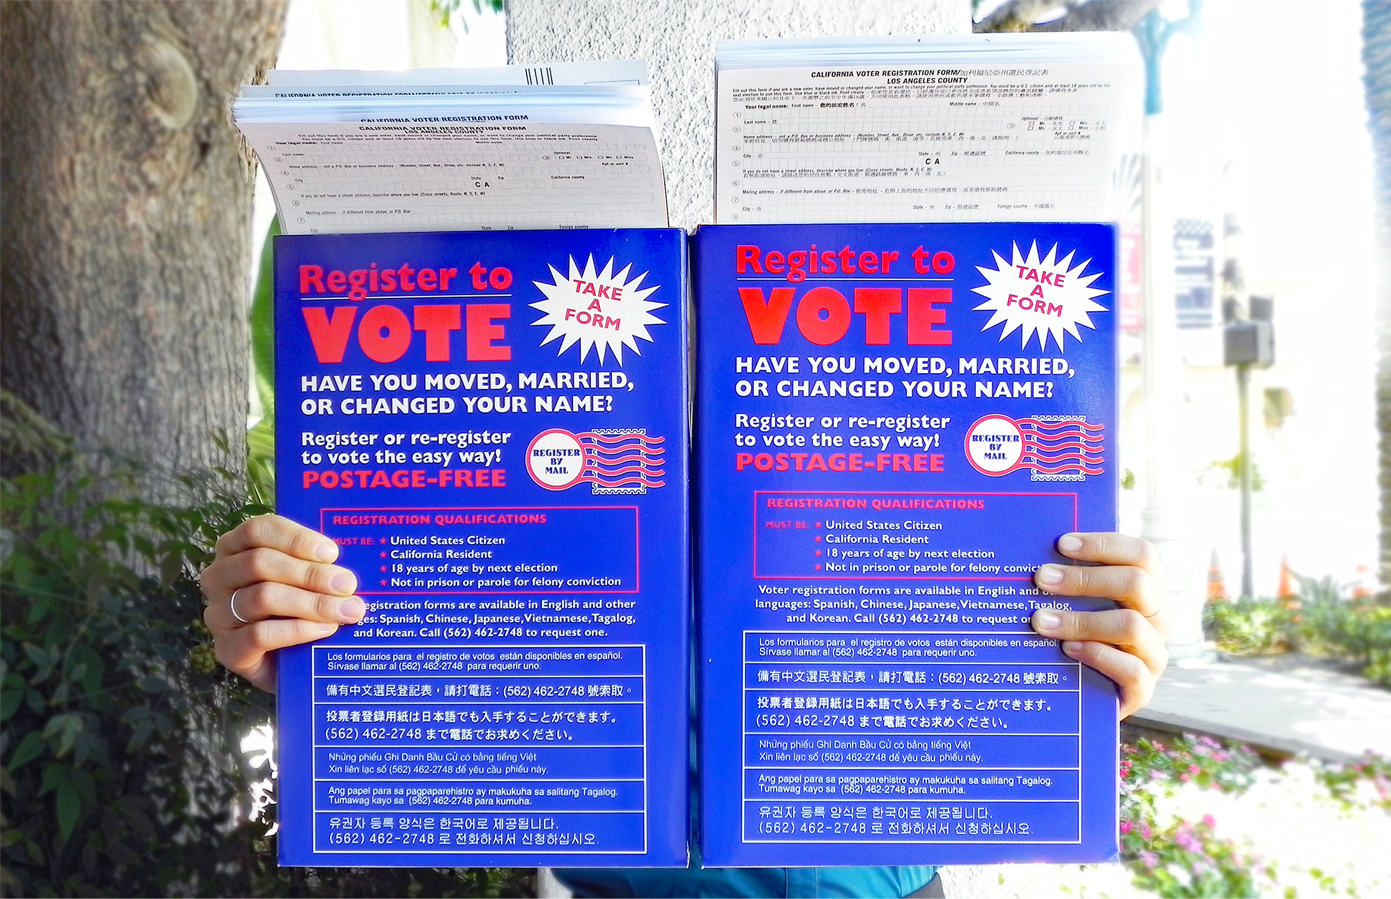 Register to Vote Photo